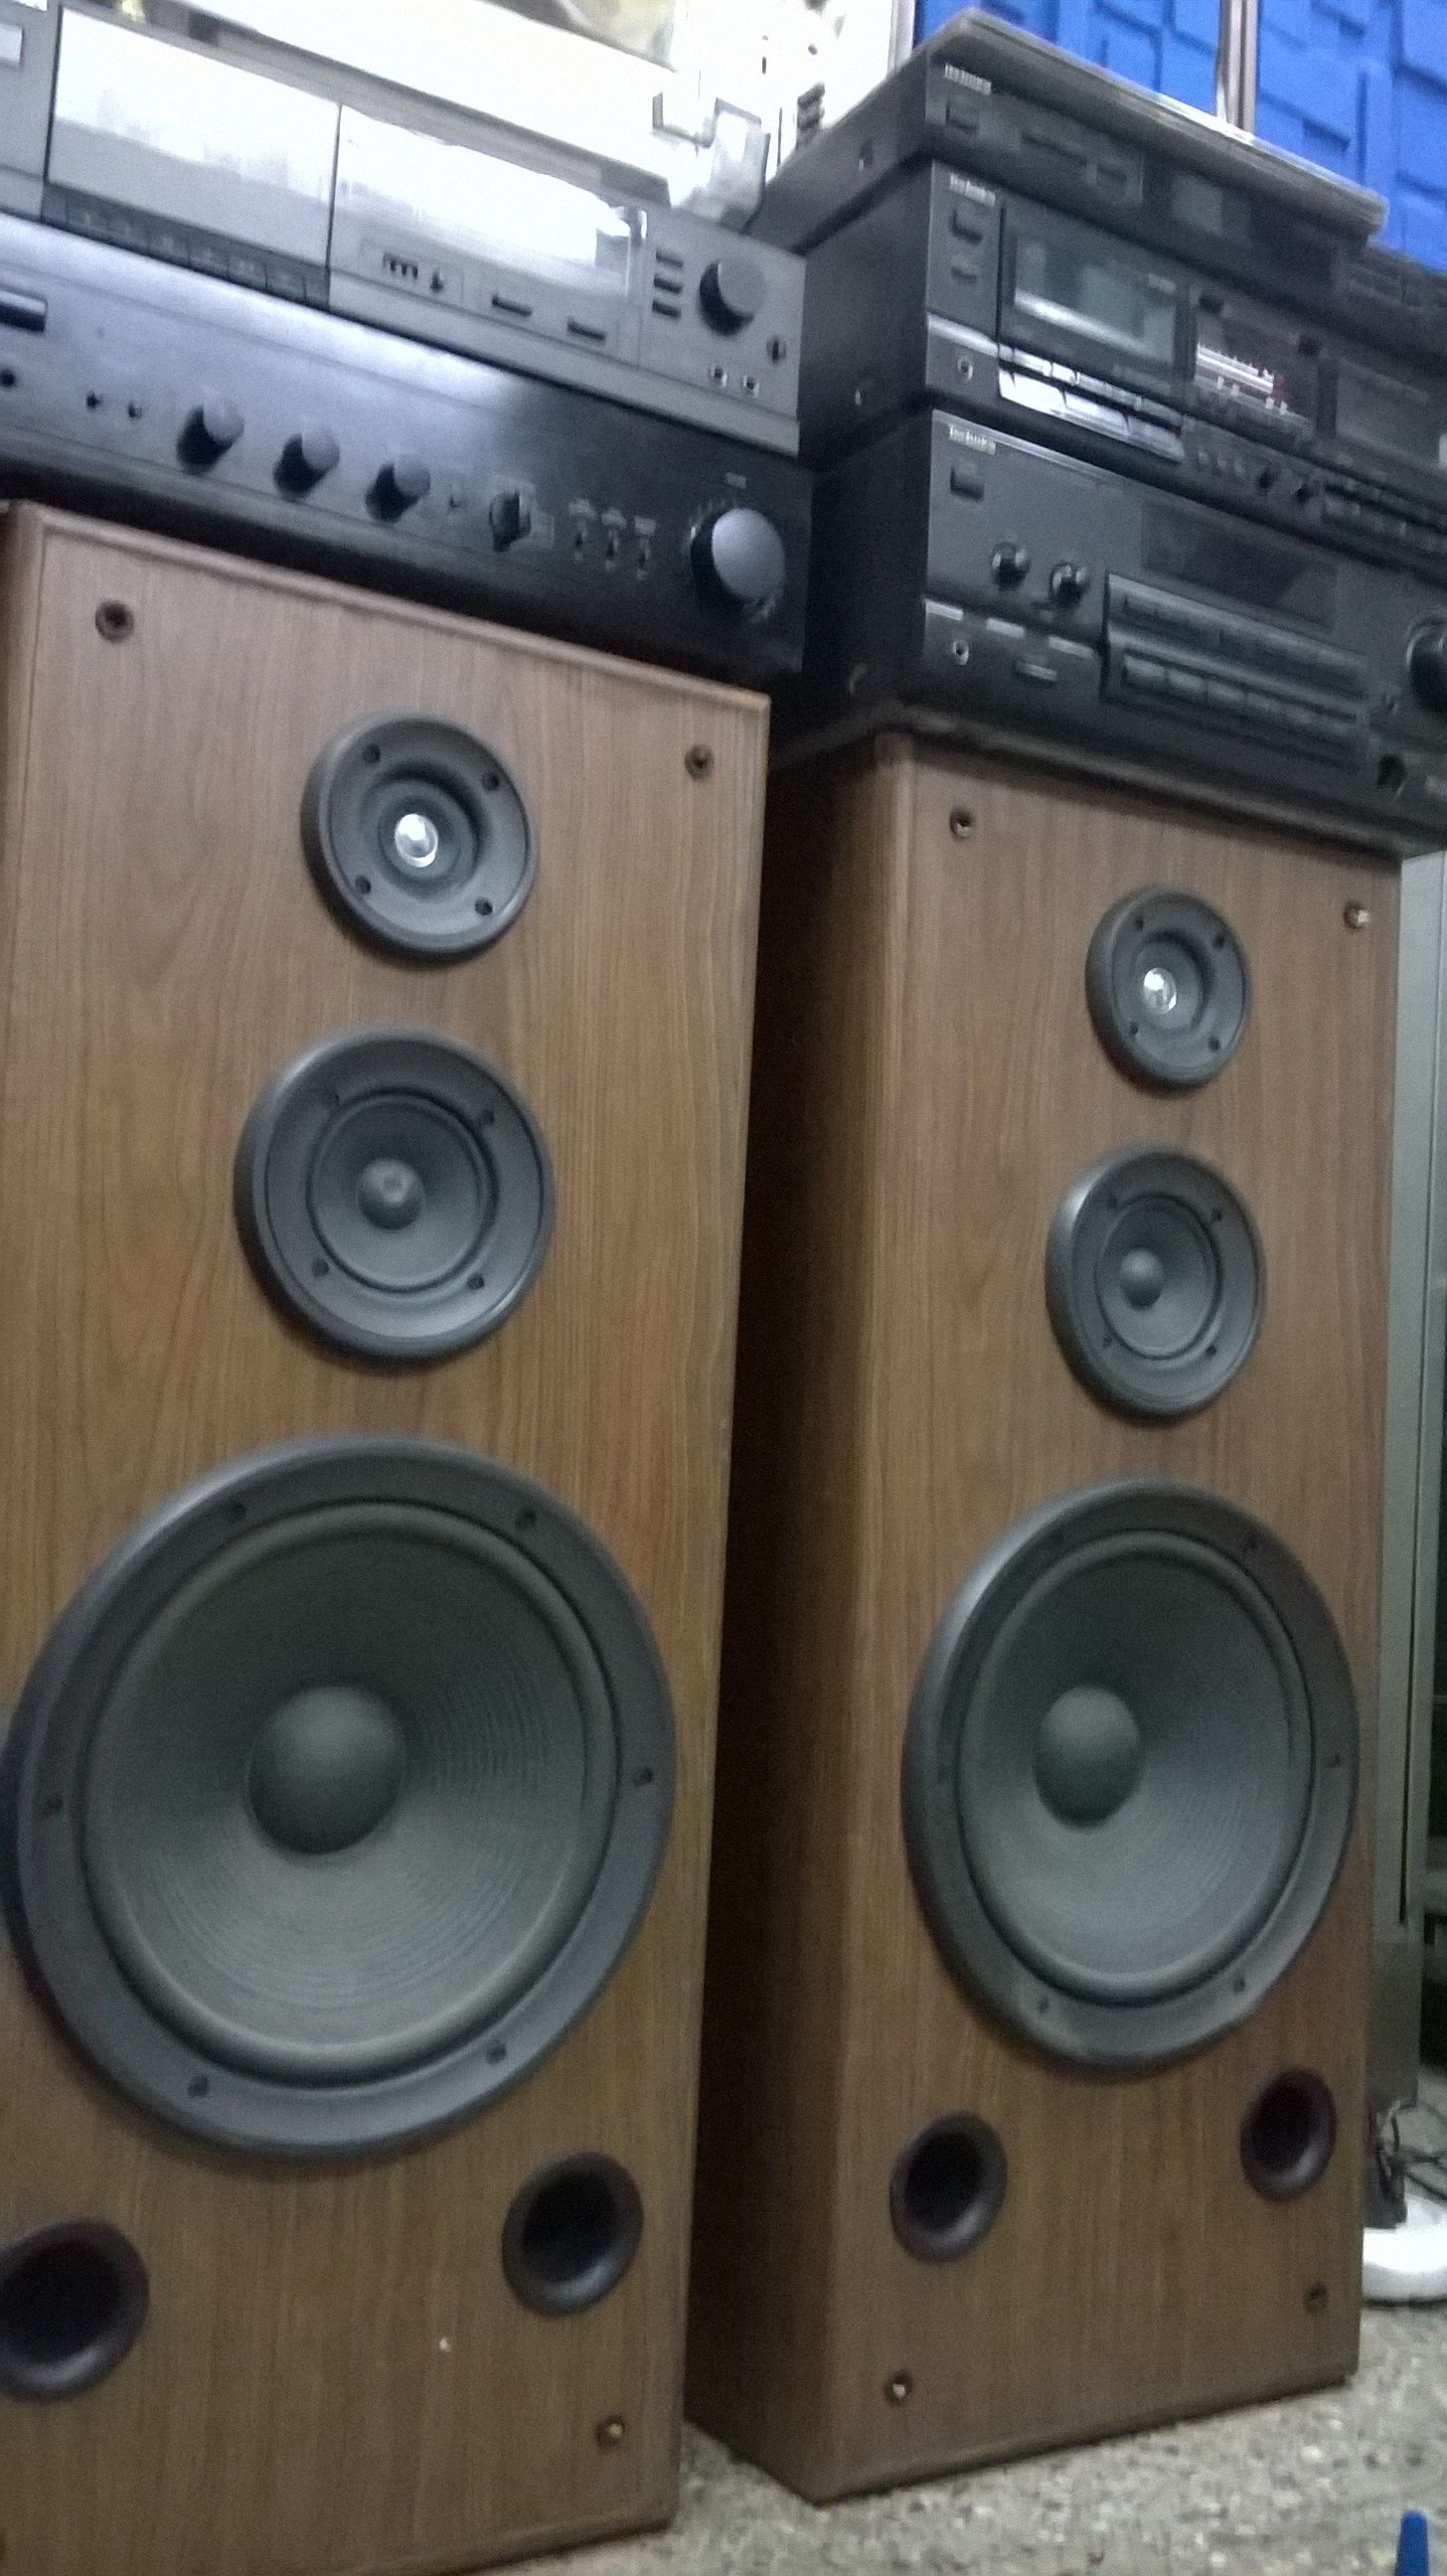 Technics Japan Sb A 35 Vintage Floor Standing Loud Speakers With 12 Drive Vintage Music Vintage Electronics Music System